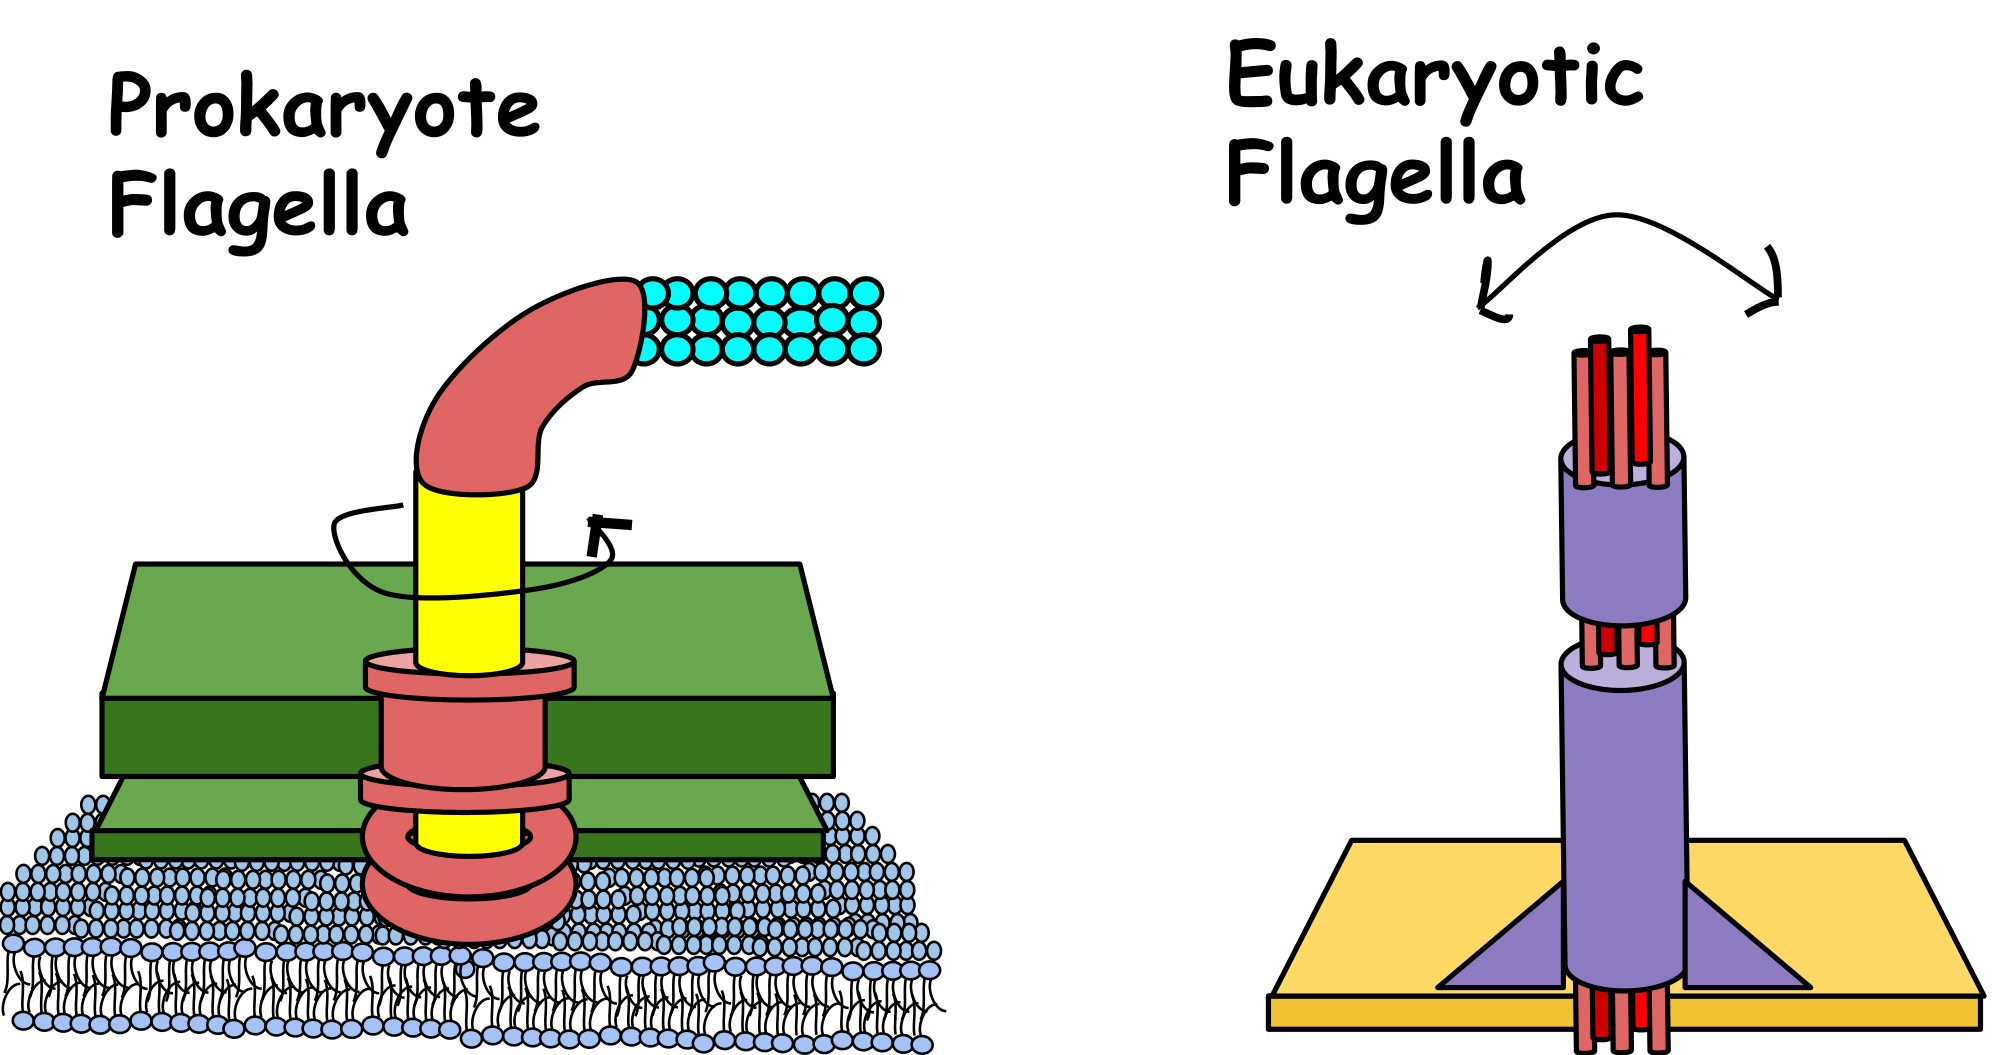 hight resolution of this motion in eukaryotic cells is powered by atp in prokaryotic cells the movement of flagella is powered by a proton gradient